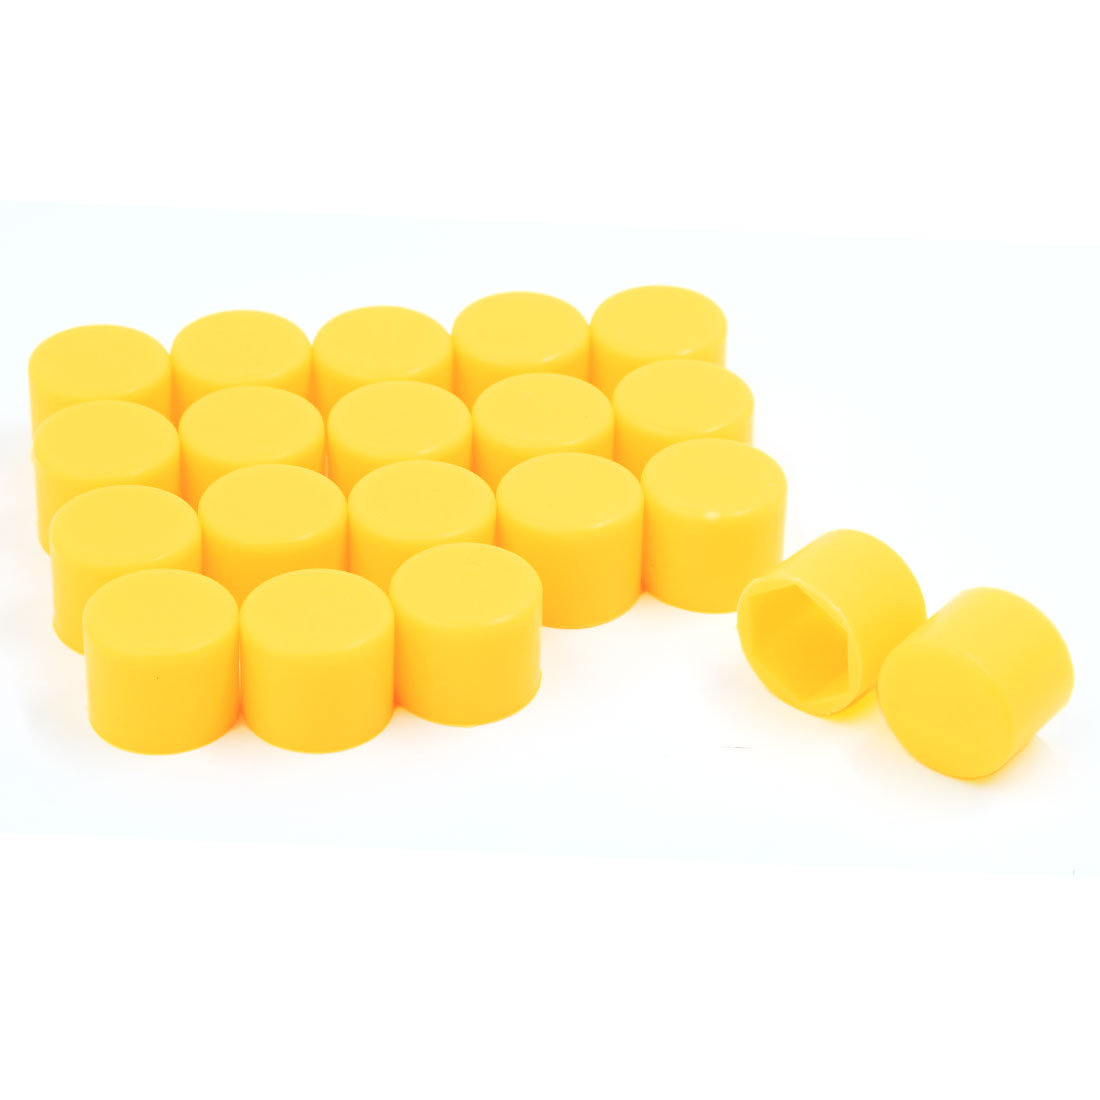 20 Pcs Universal Yellow Silicone Car Wheel Nut Bolt Cover Tyre Screw Cap 21mm